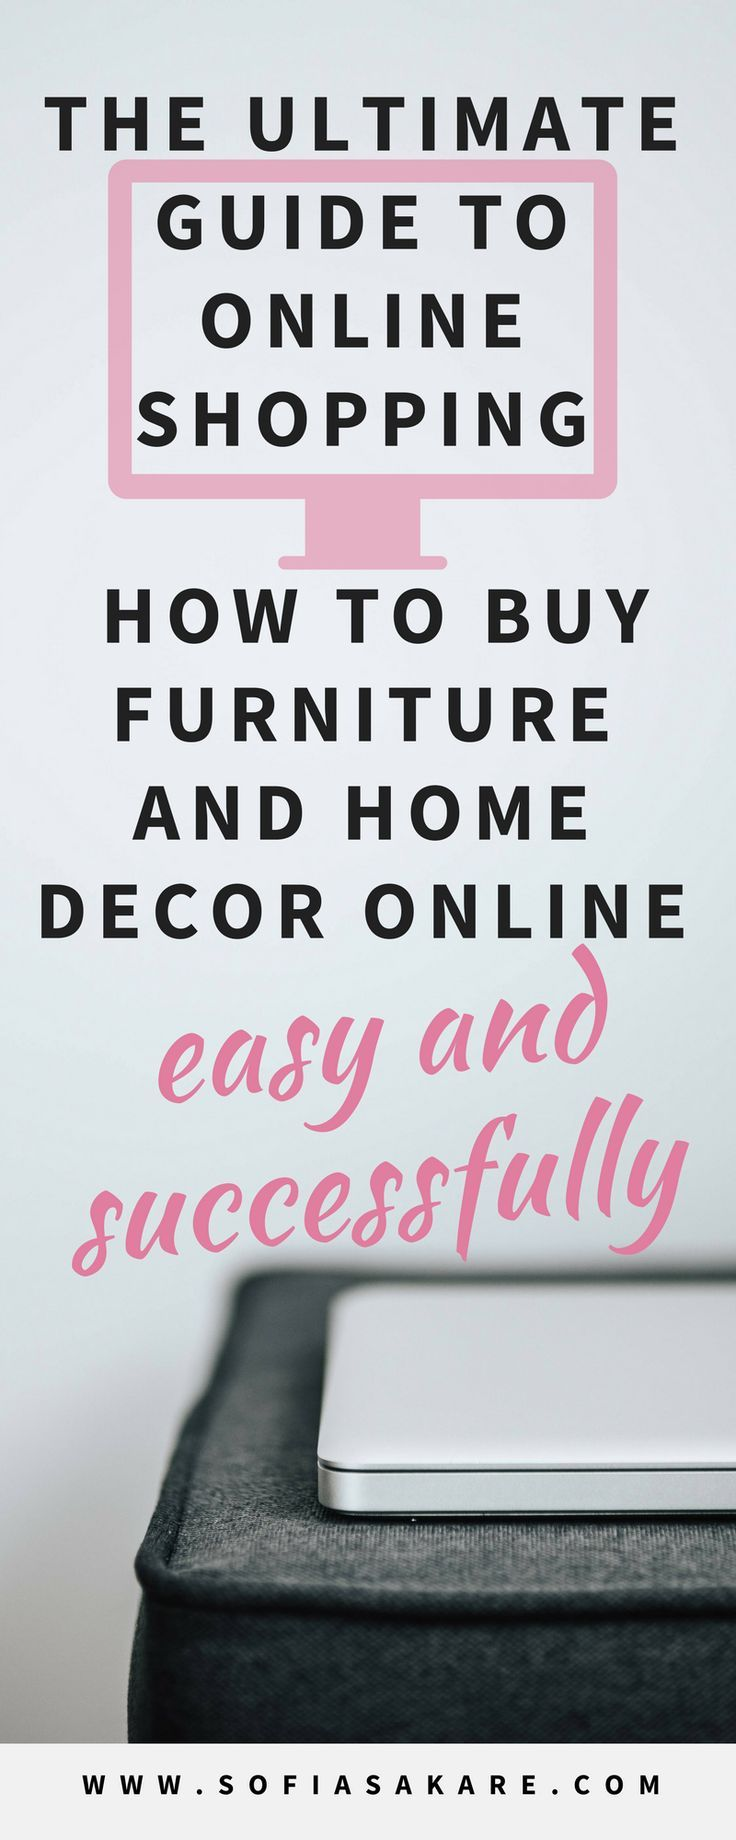 The Ultimate Guide to Online Shopping How to Buy Furniture and Home Decor Online #shoppingguide #onlineshopping #furnitureonlineshopping